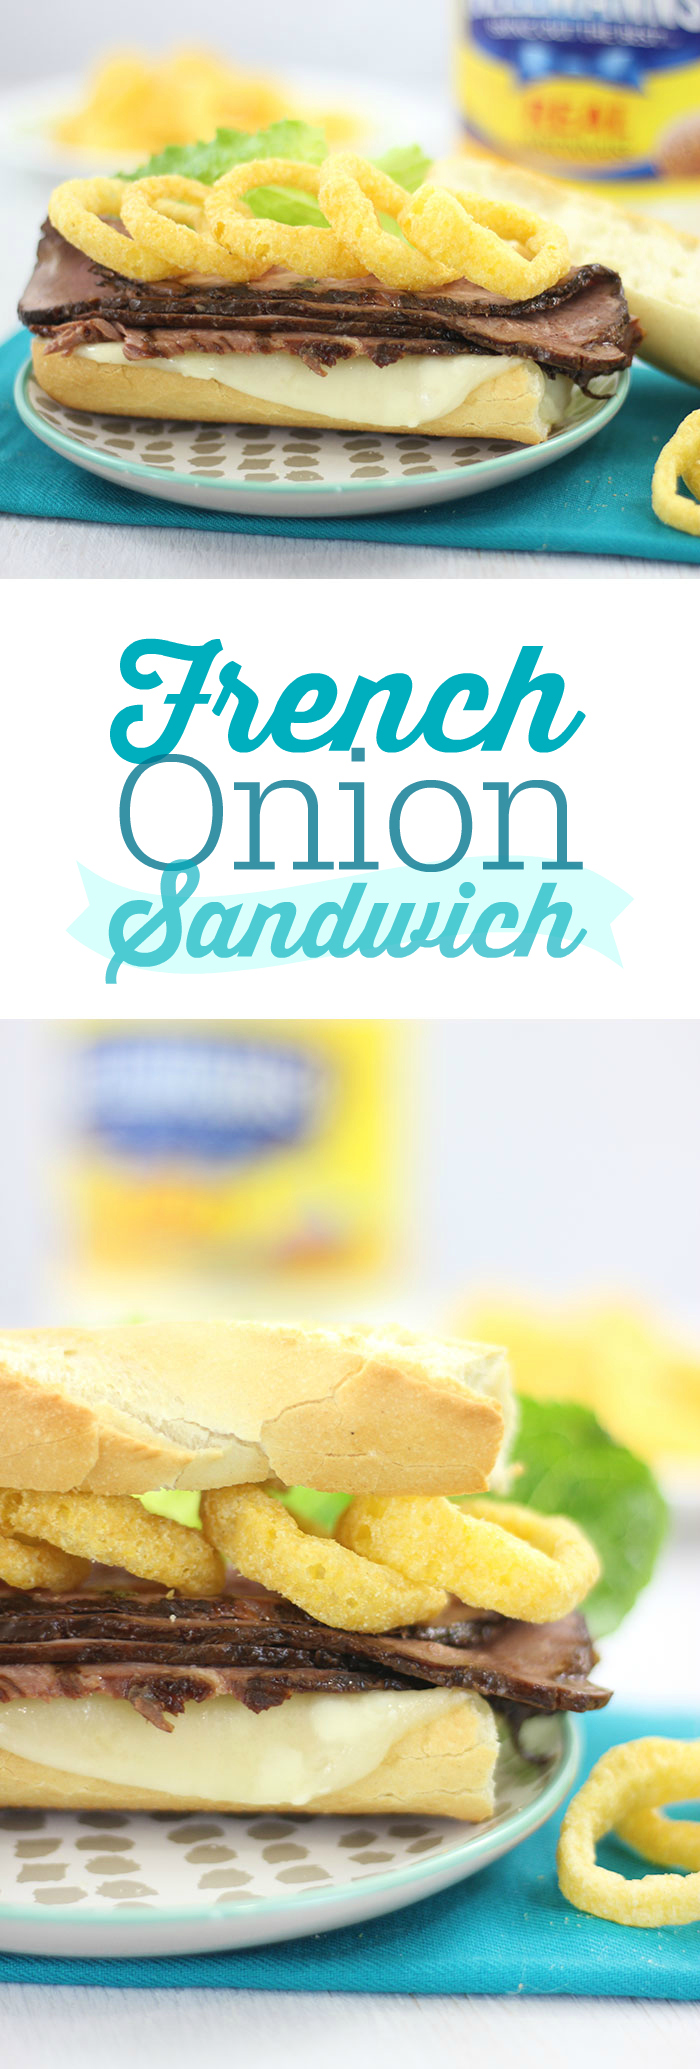 French Onion Sandwich. Click the image for this epic unique idea that you didn't know you were missing. Best served on freshly baked Baguette.